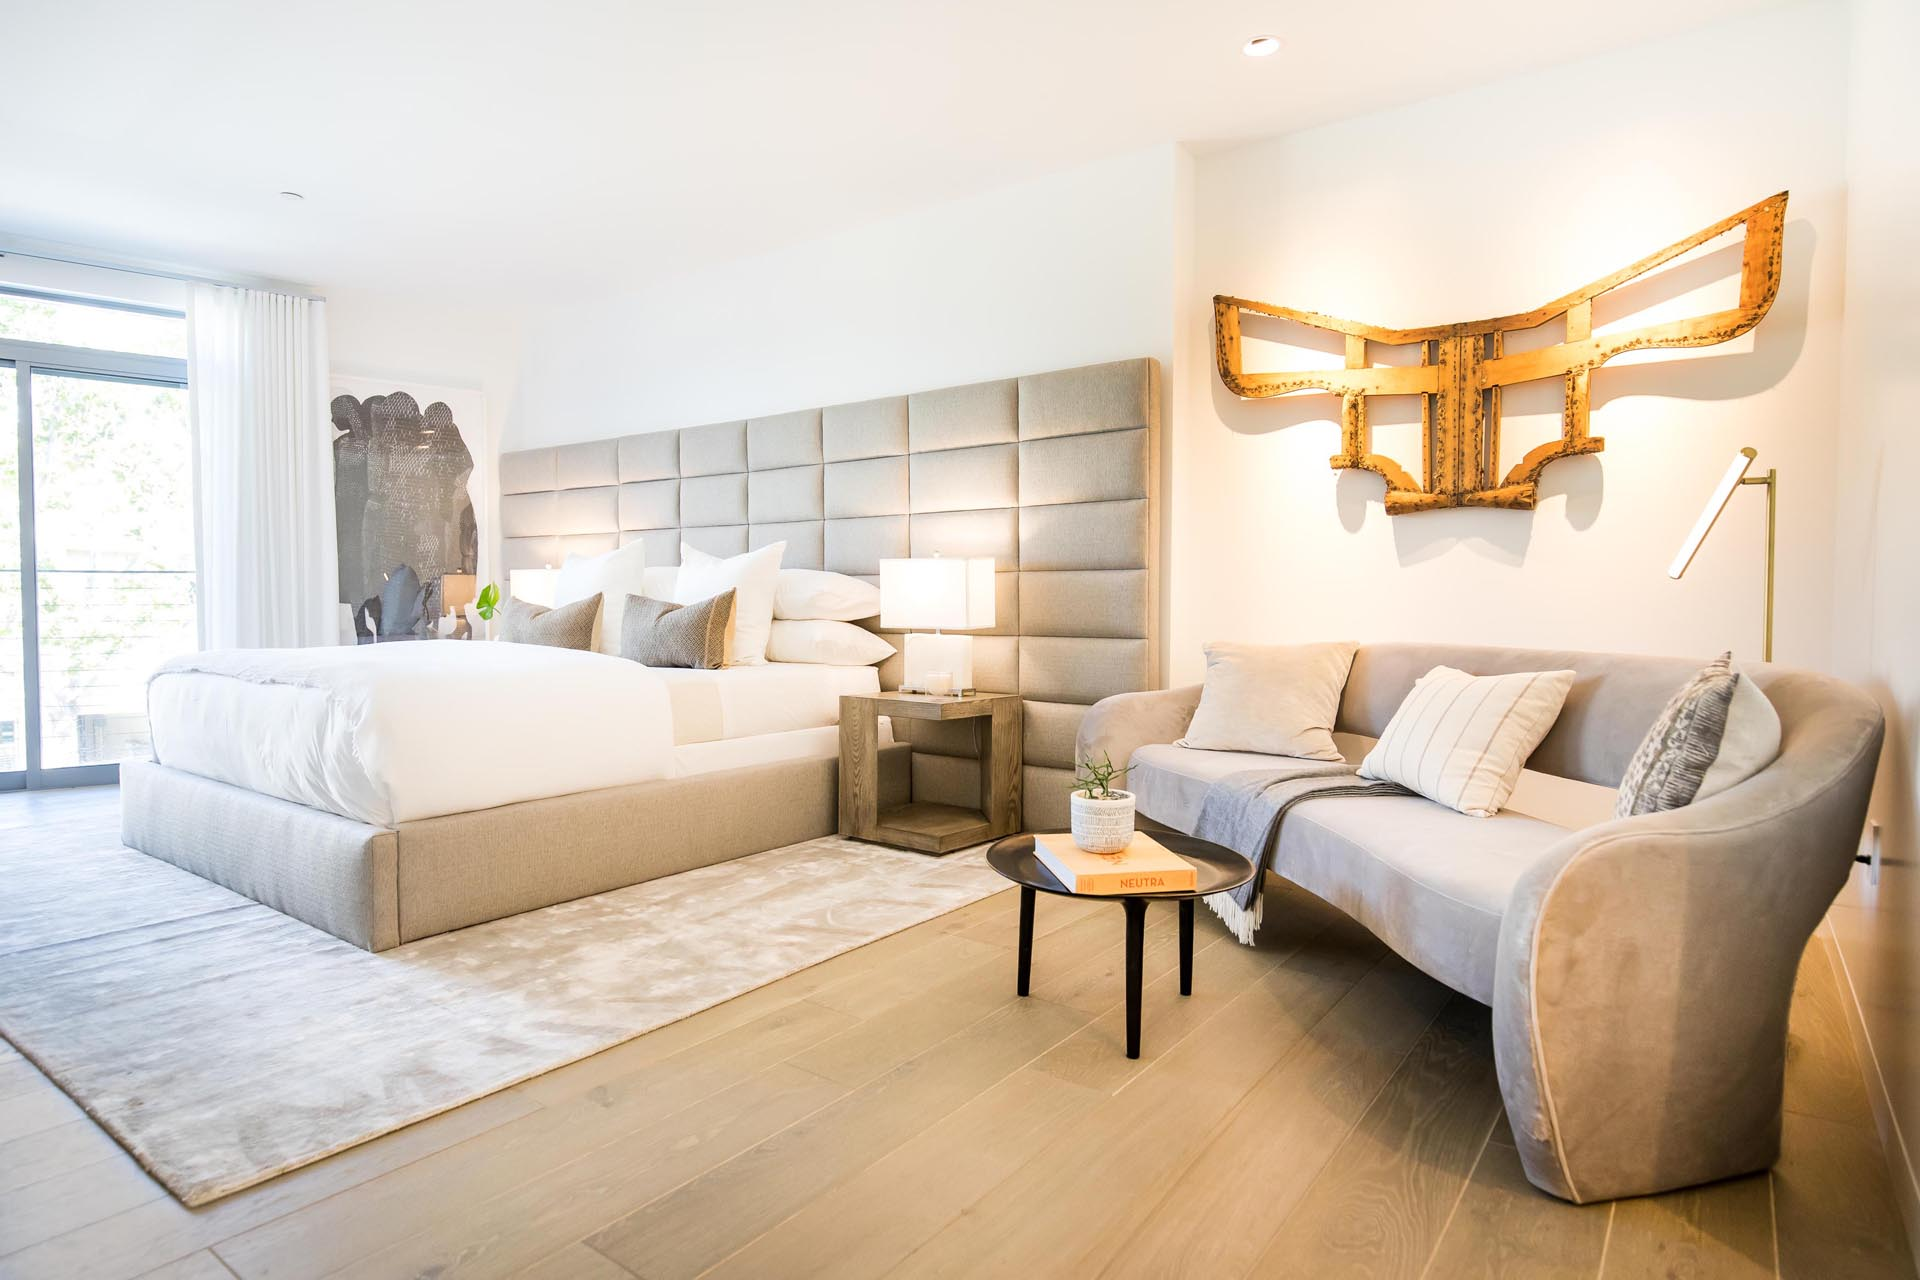 A modern bedroom with an oversized upholstered headboard.